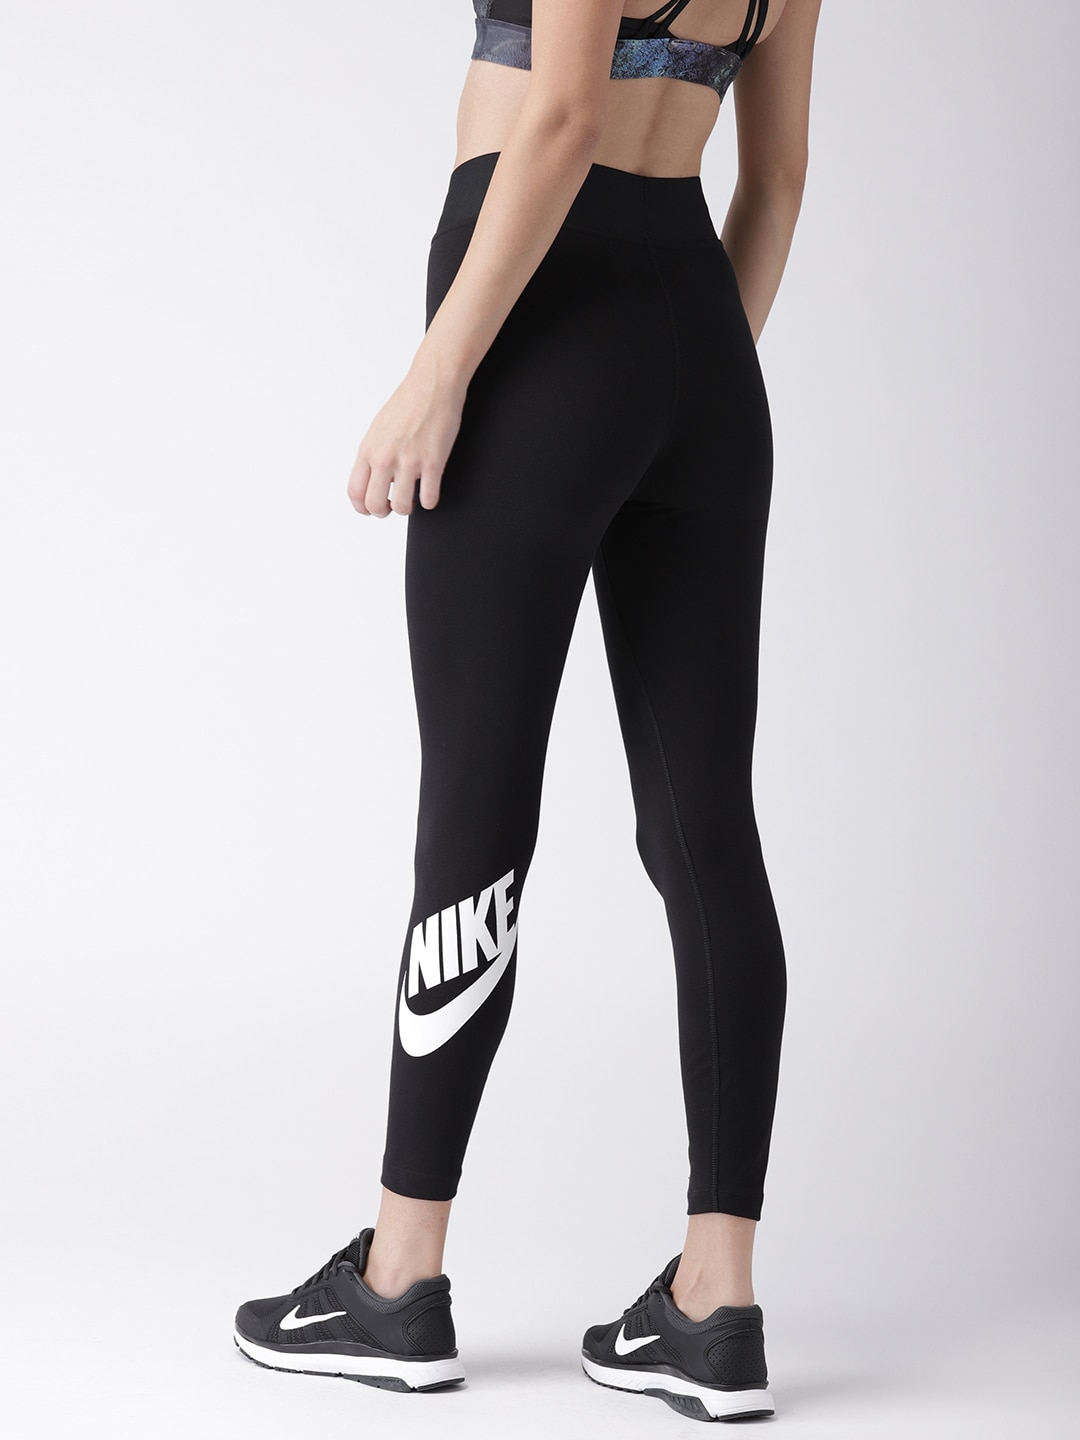 ab7e5de44e Nike Tights - Buy Nike Tights online in India